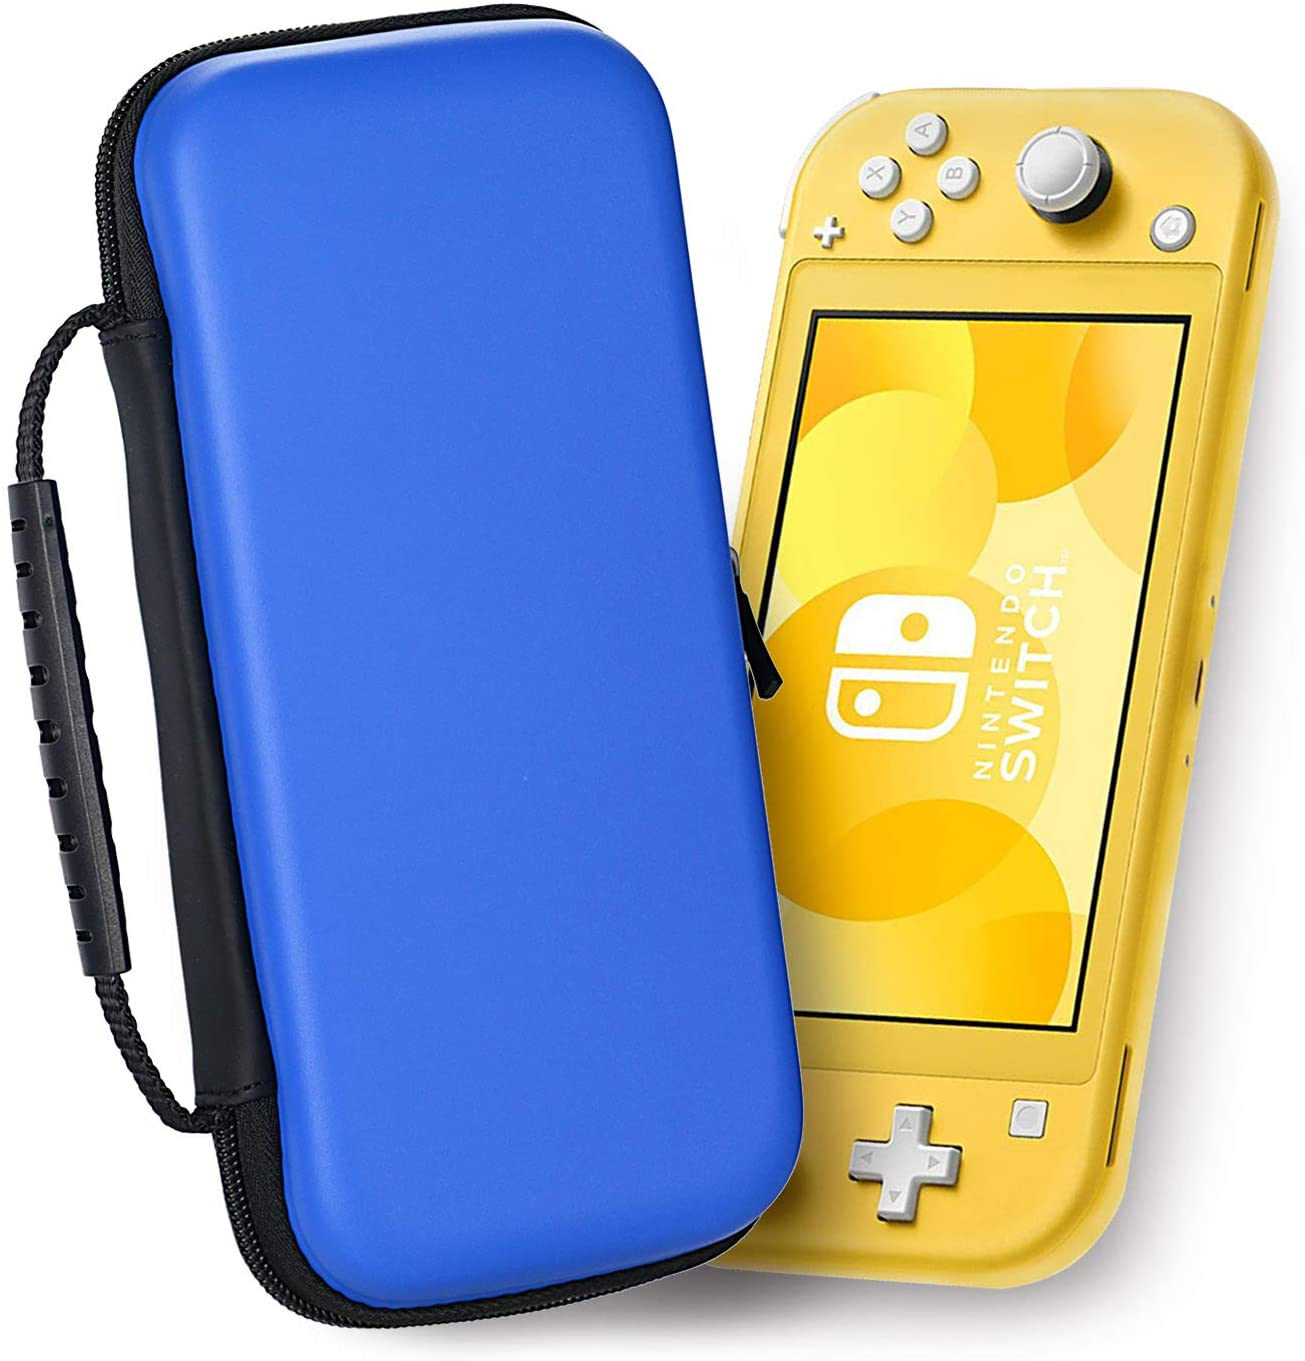 Carrying Case for Nintendo Switch Lite, Portable Hard Shell Travel Protective Case, 8 Game Card Storage by WeiBonD (Blue)